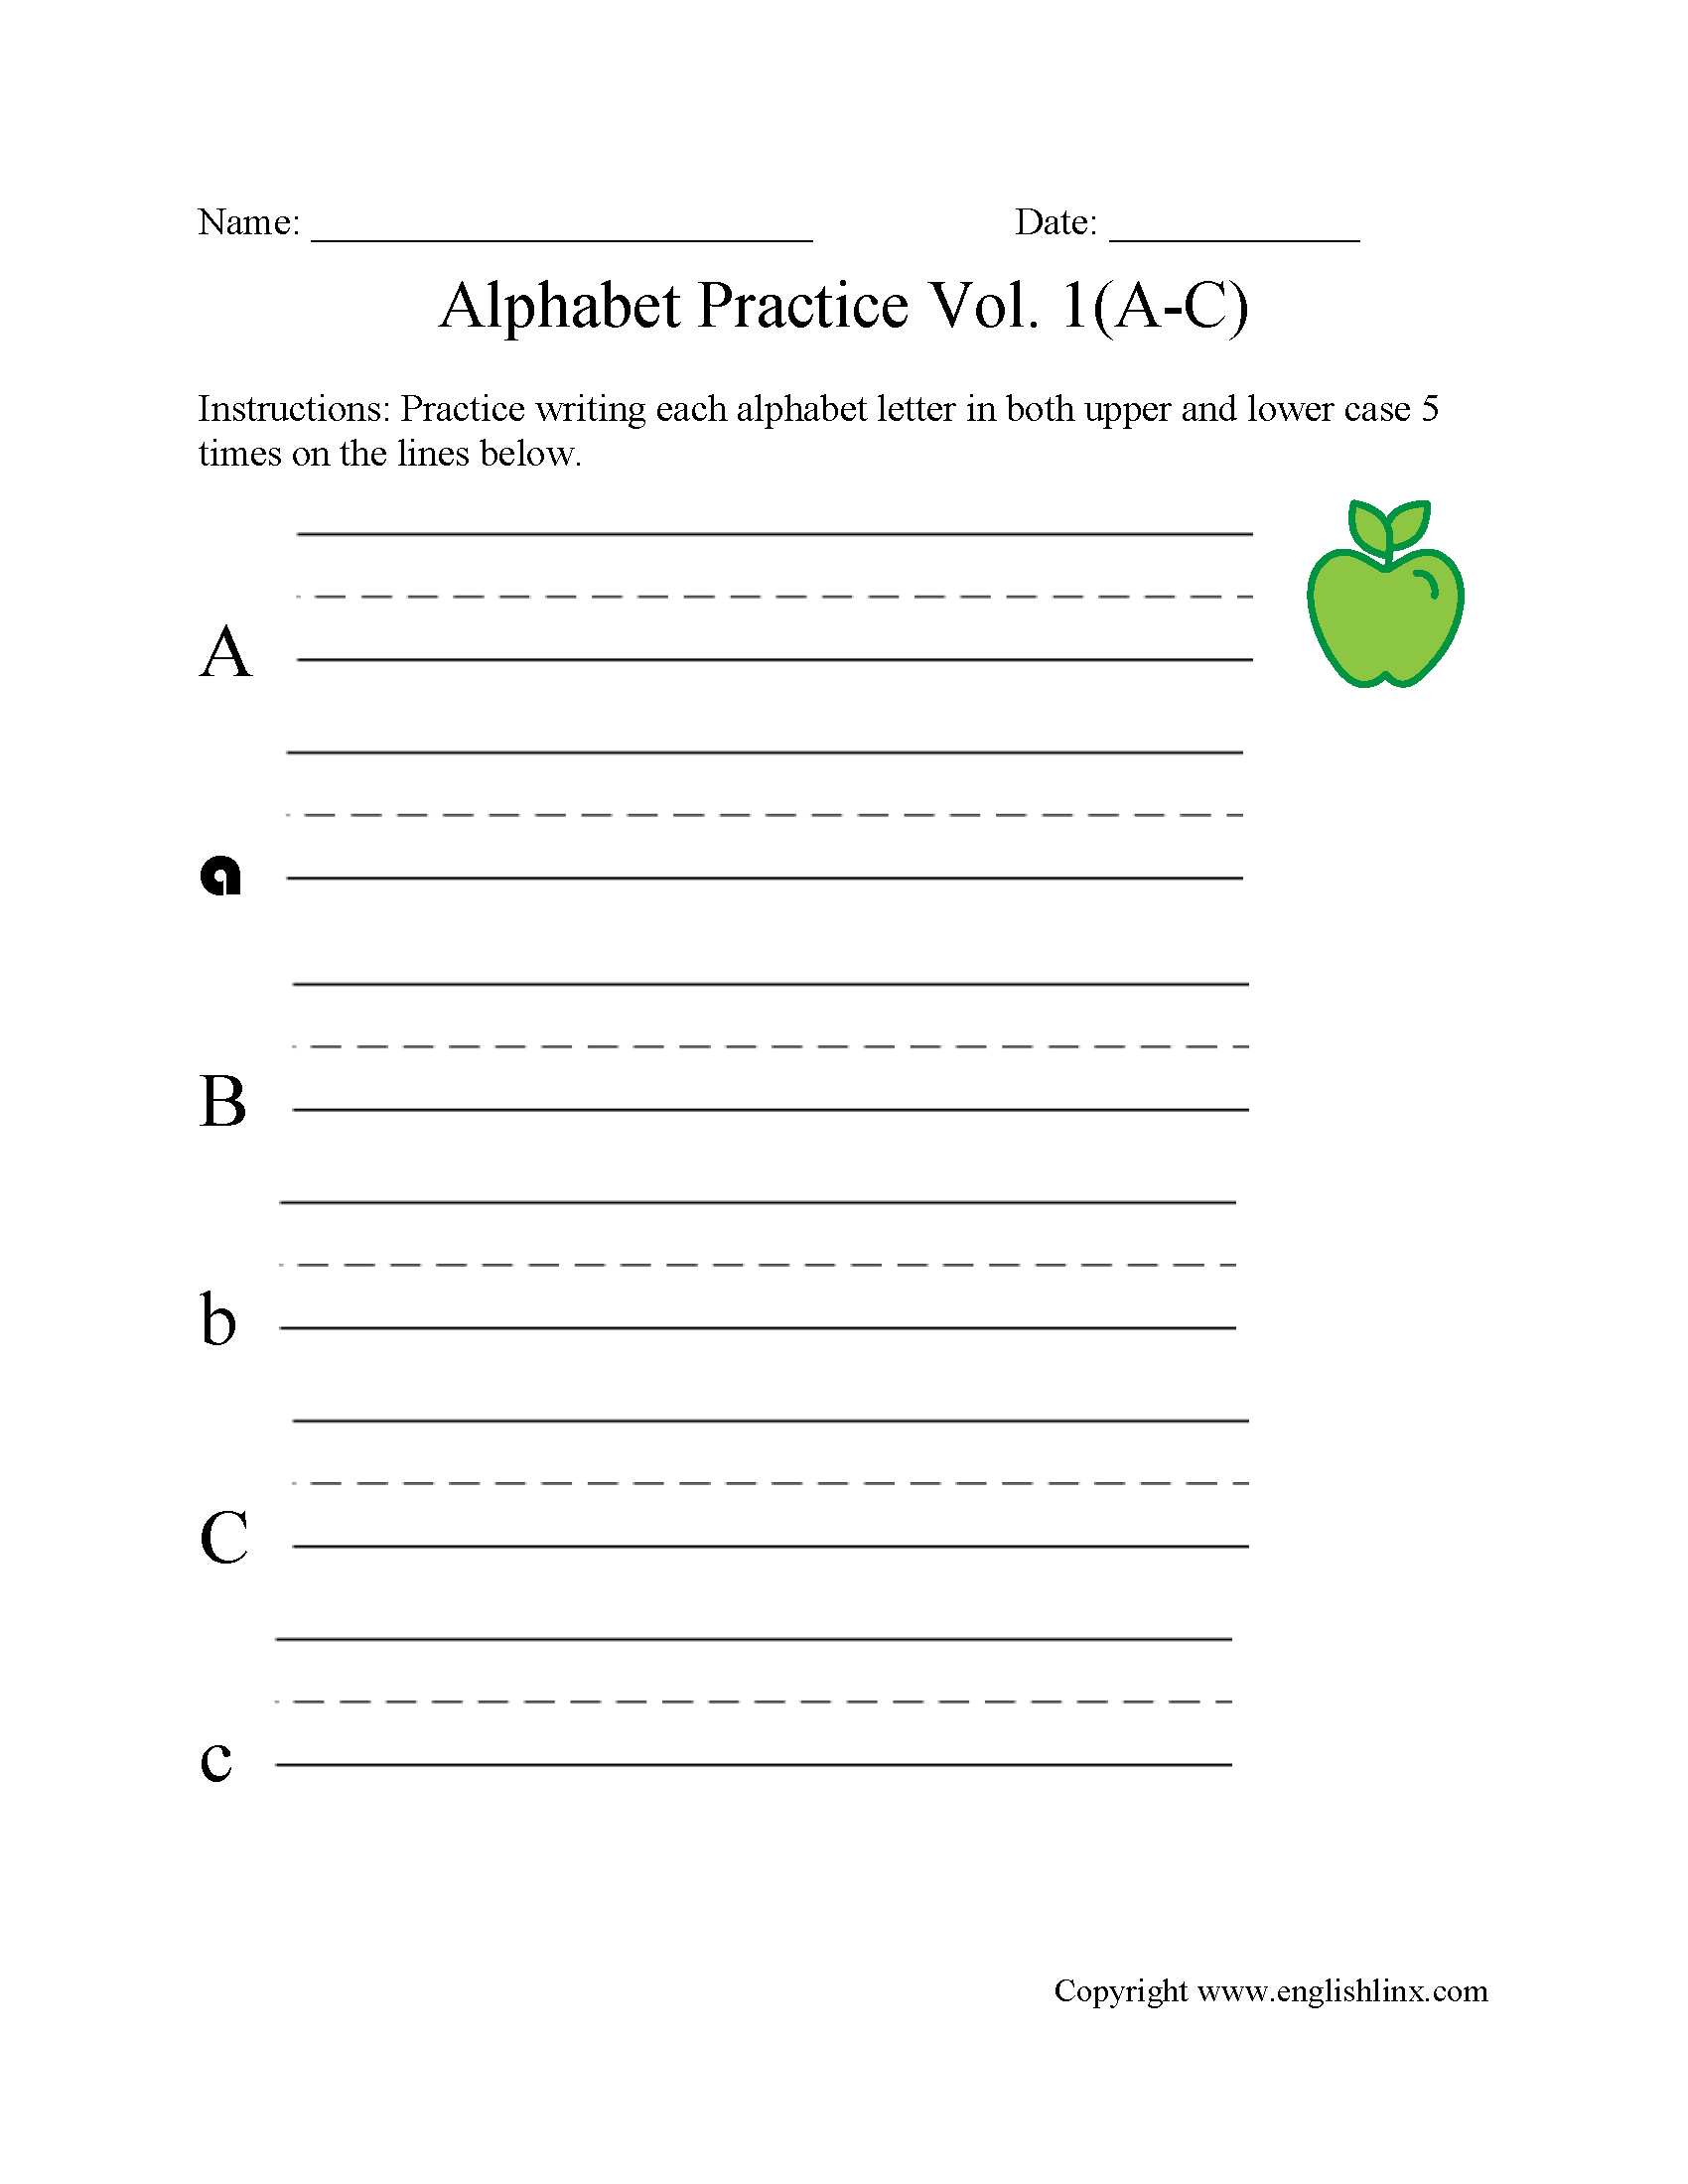 Englishlinx | Alphabet Worksheets intended for Alphabet Worksheets 4 Lines